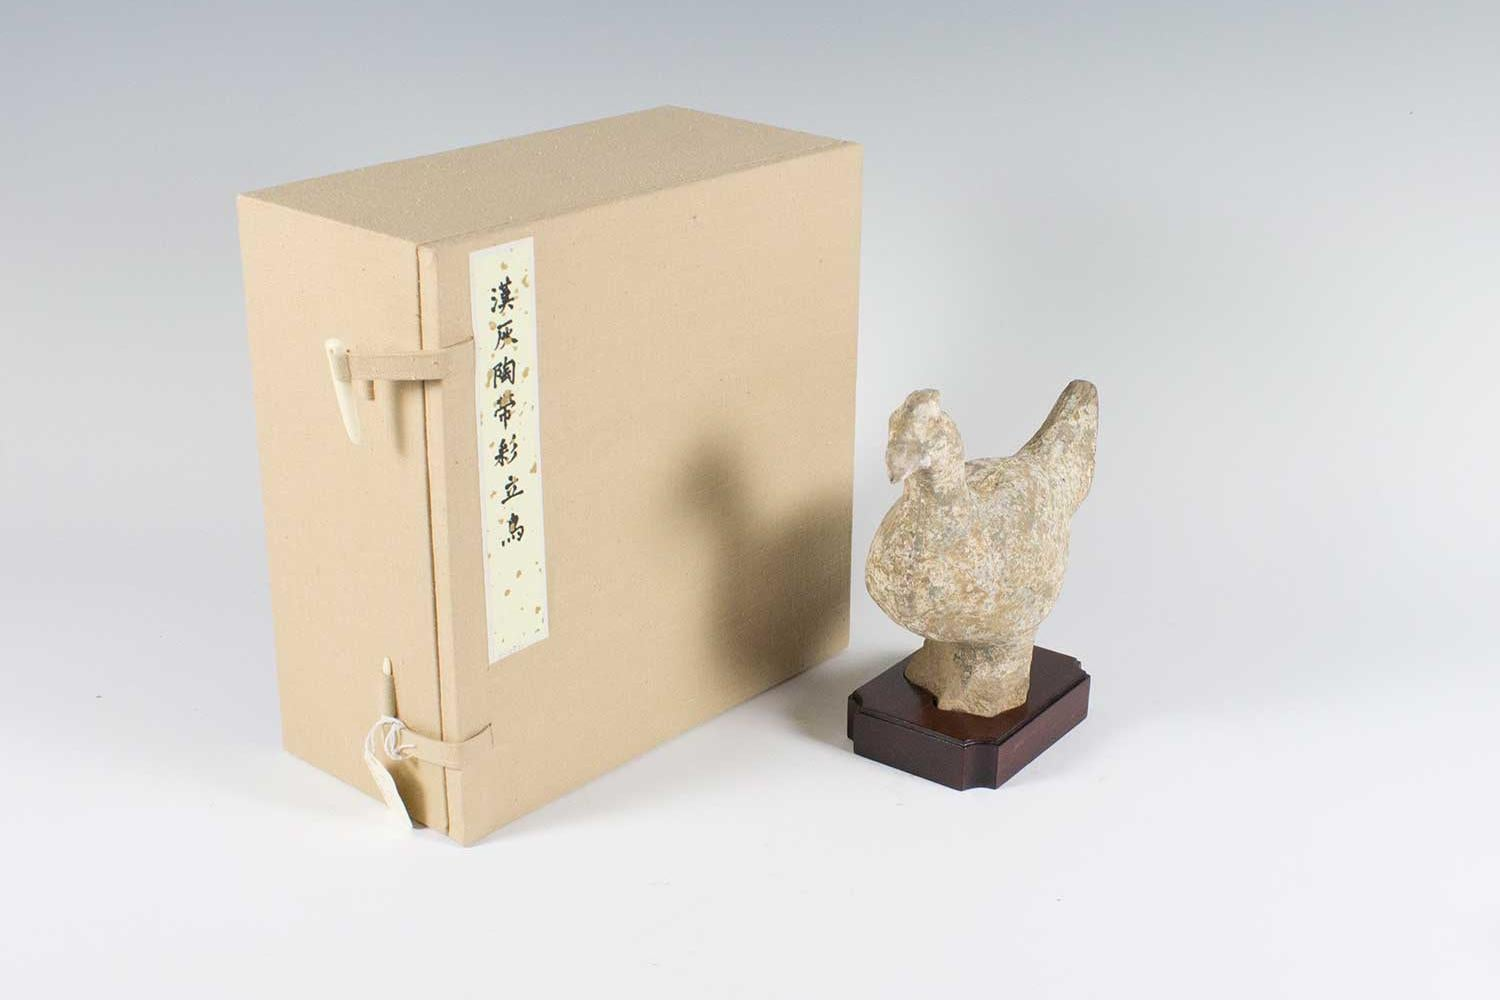 Clay figure of a small chicken standing on a wooden stand with tan box on left.